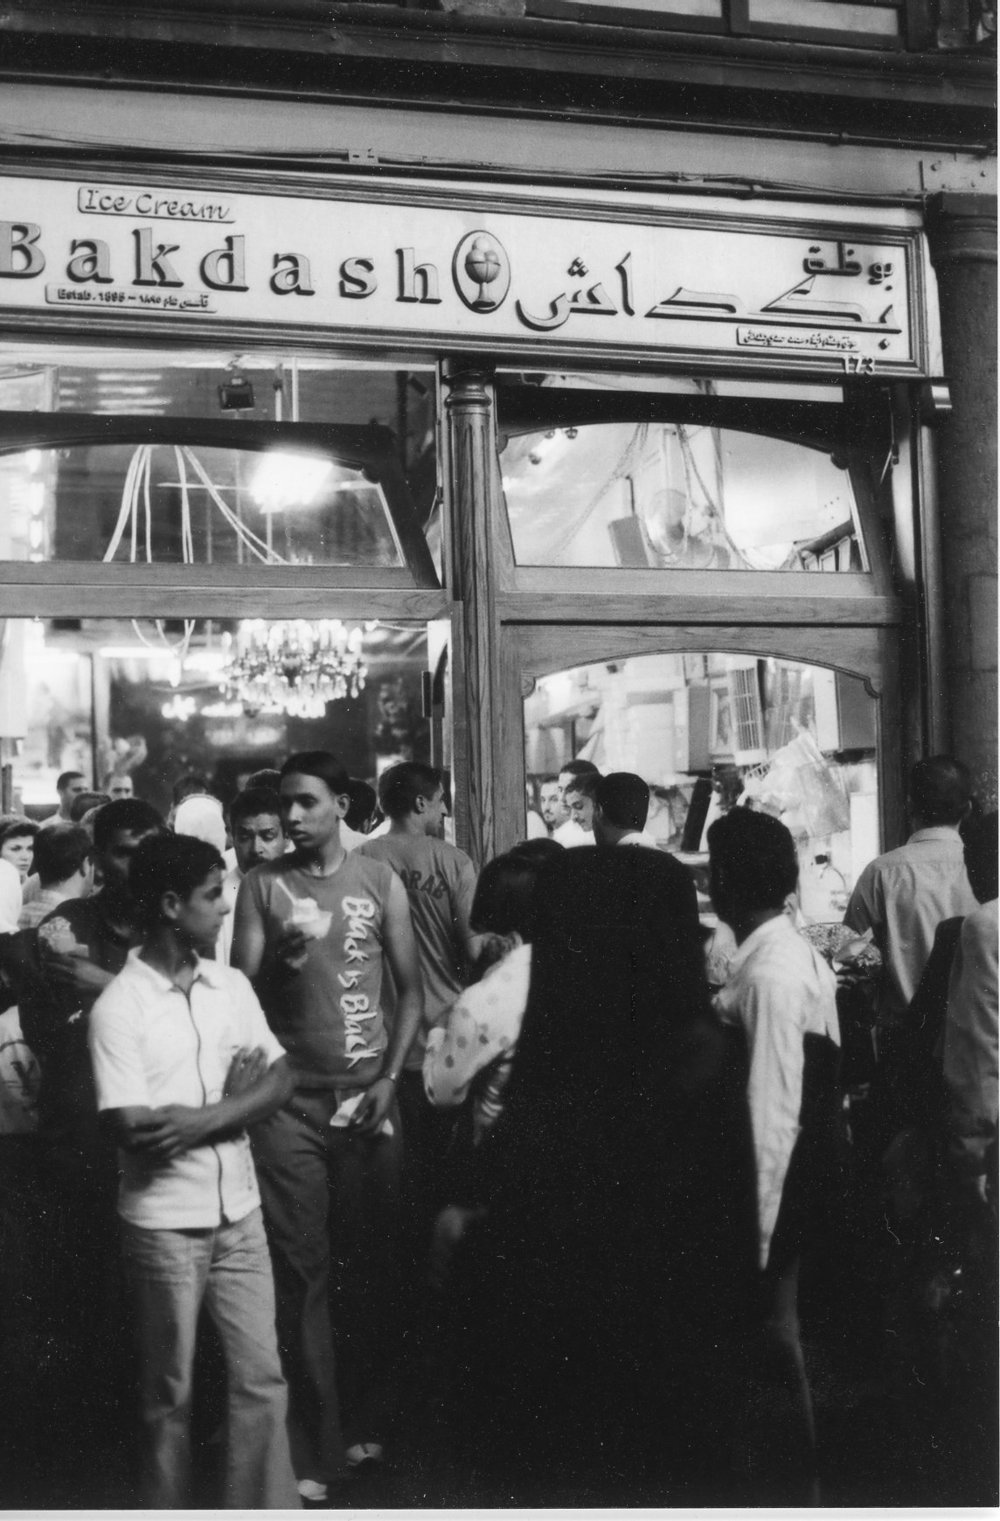 Bakdash ice cream parlor, Damascus, Syria, probably 2004. (I'm not sure why the tones are different in this one. I don't remember scanning it differently or doing anything to it in Lightroom.)